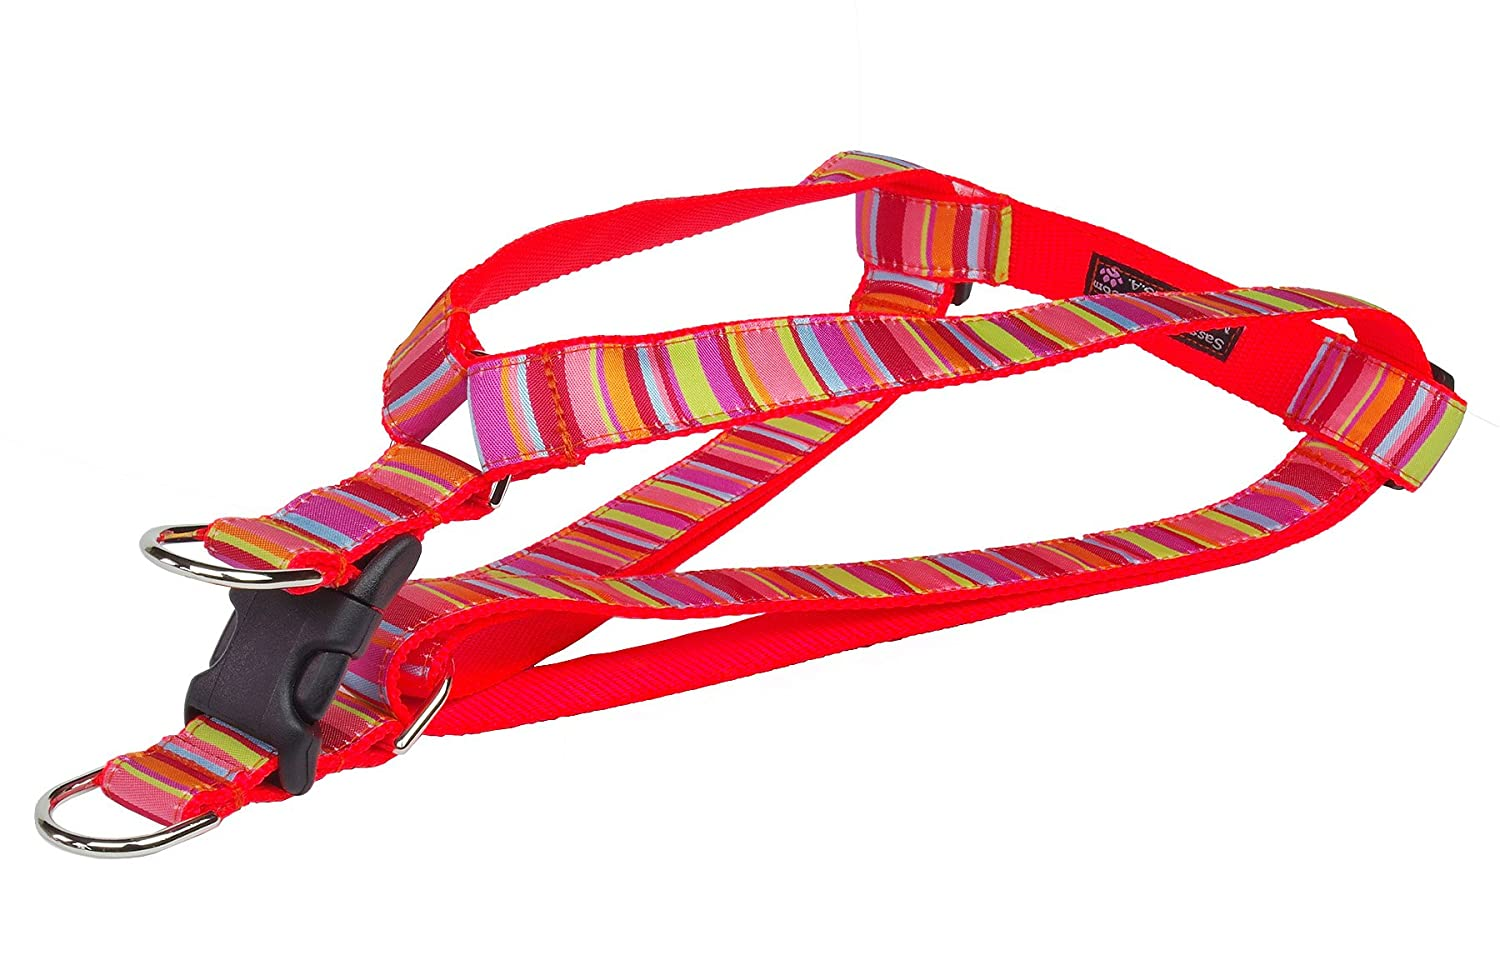 Lime Coral Large Lime Coral Large Sassy Dog Wear 1  x 23 -35  Stripe Dog Harness, Large, Lime Coral